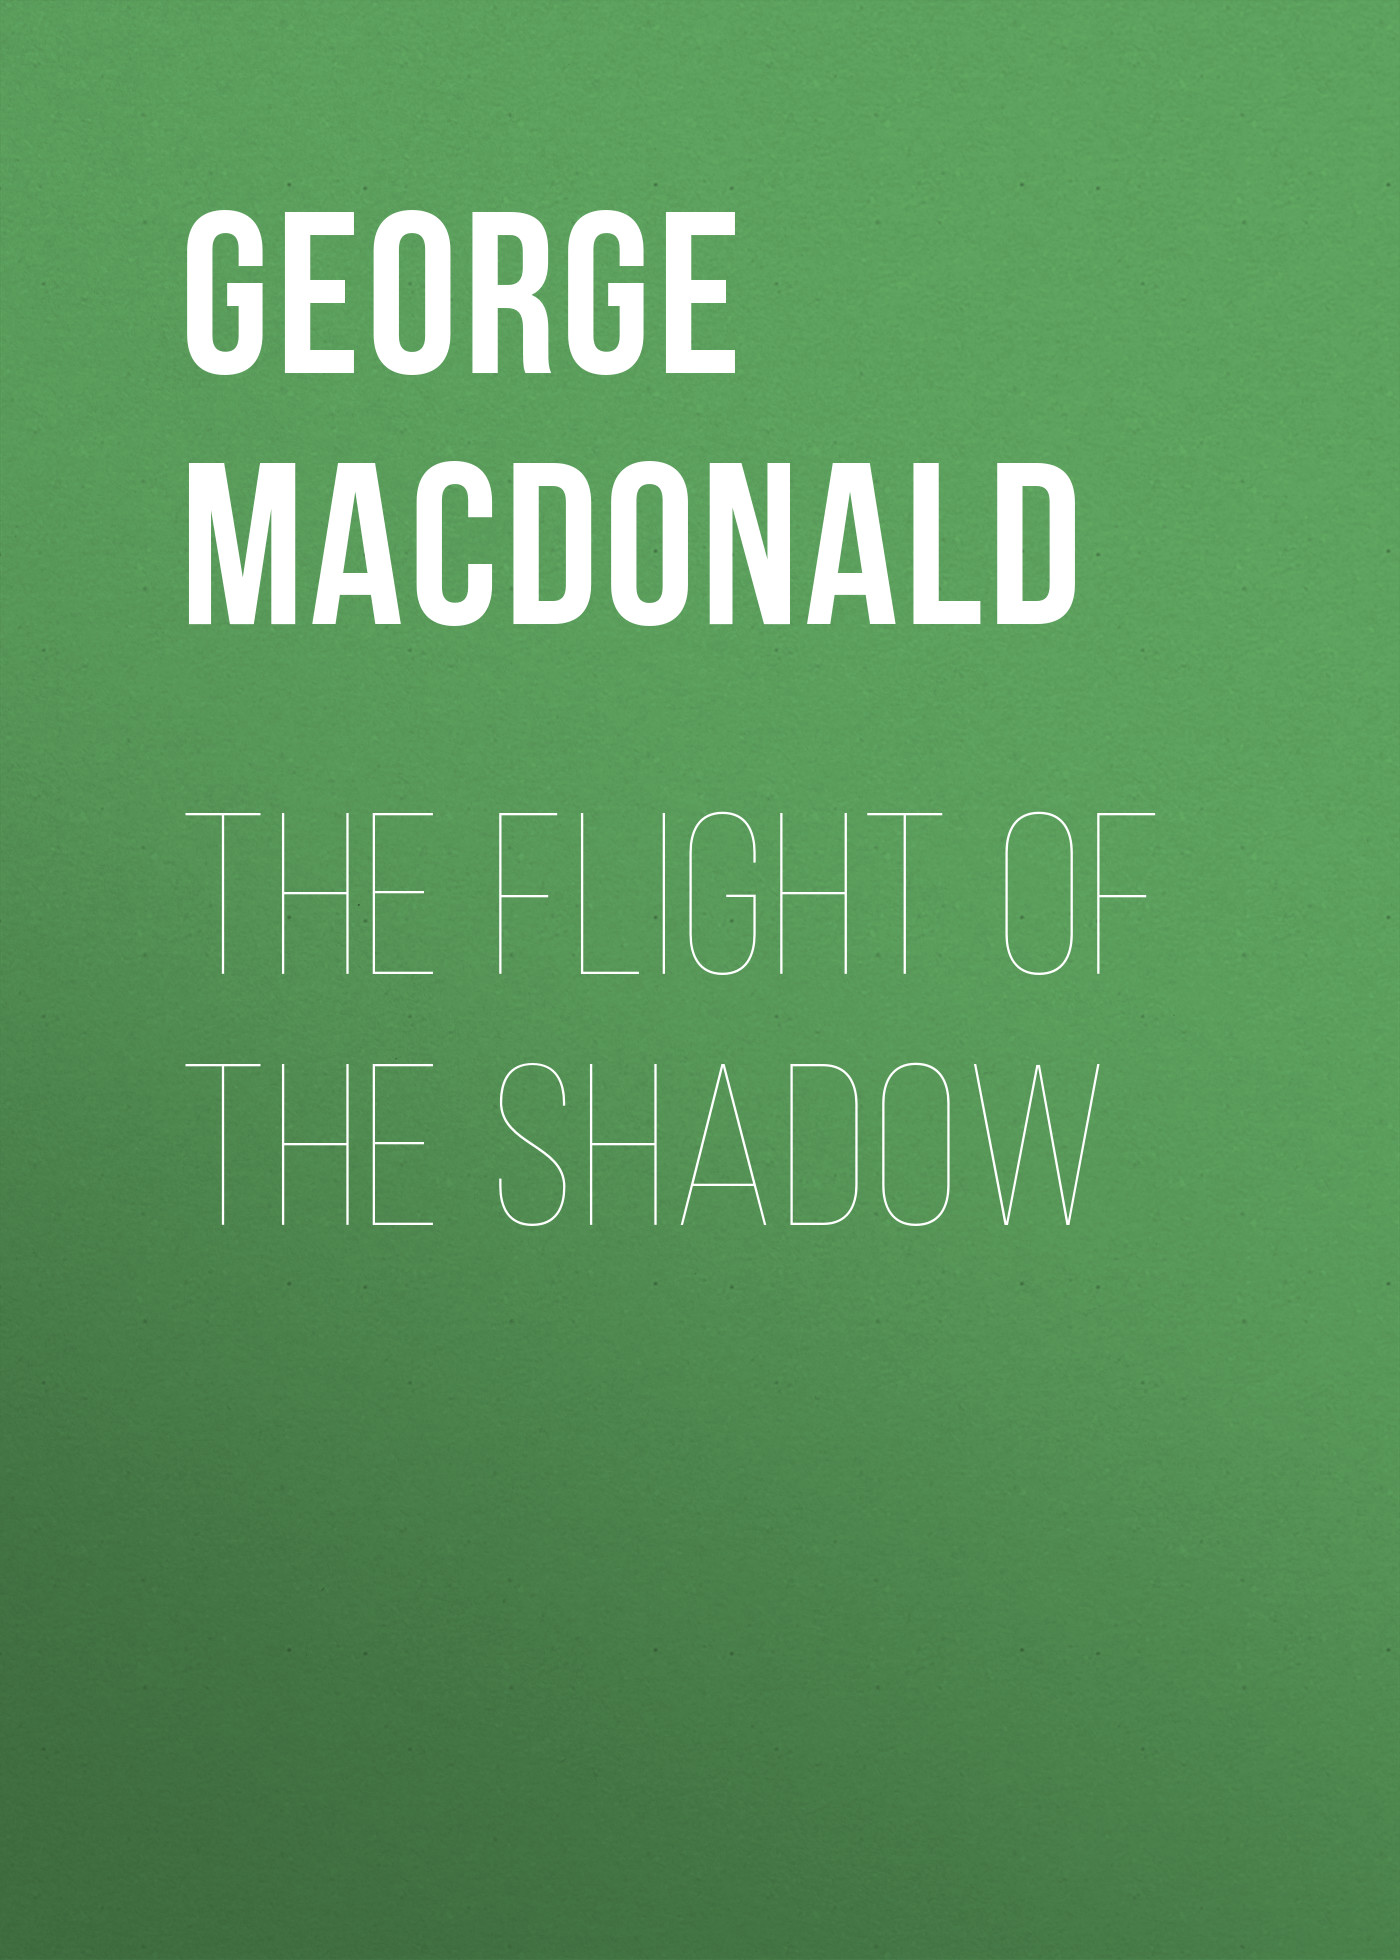 George MacDonald The Flight of the Shadow george macdonald the poetical works of george macdonald in two volumes volume 1